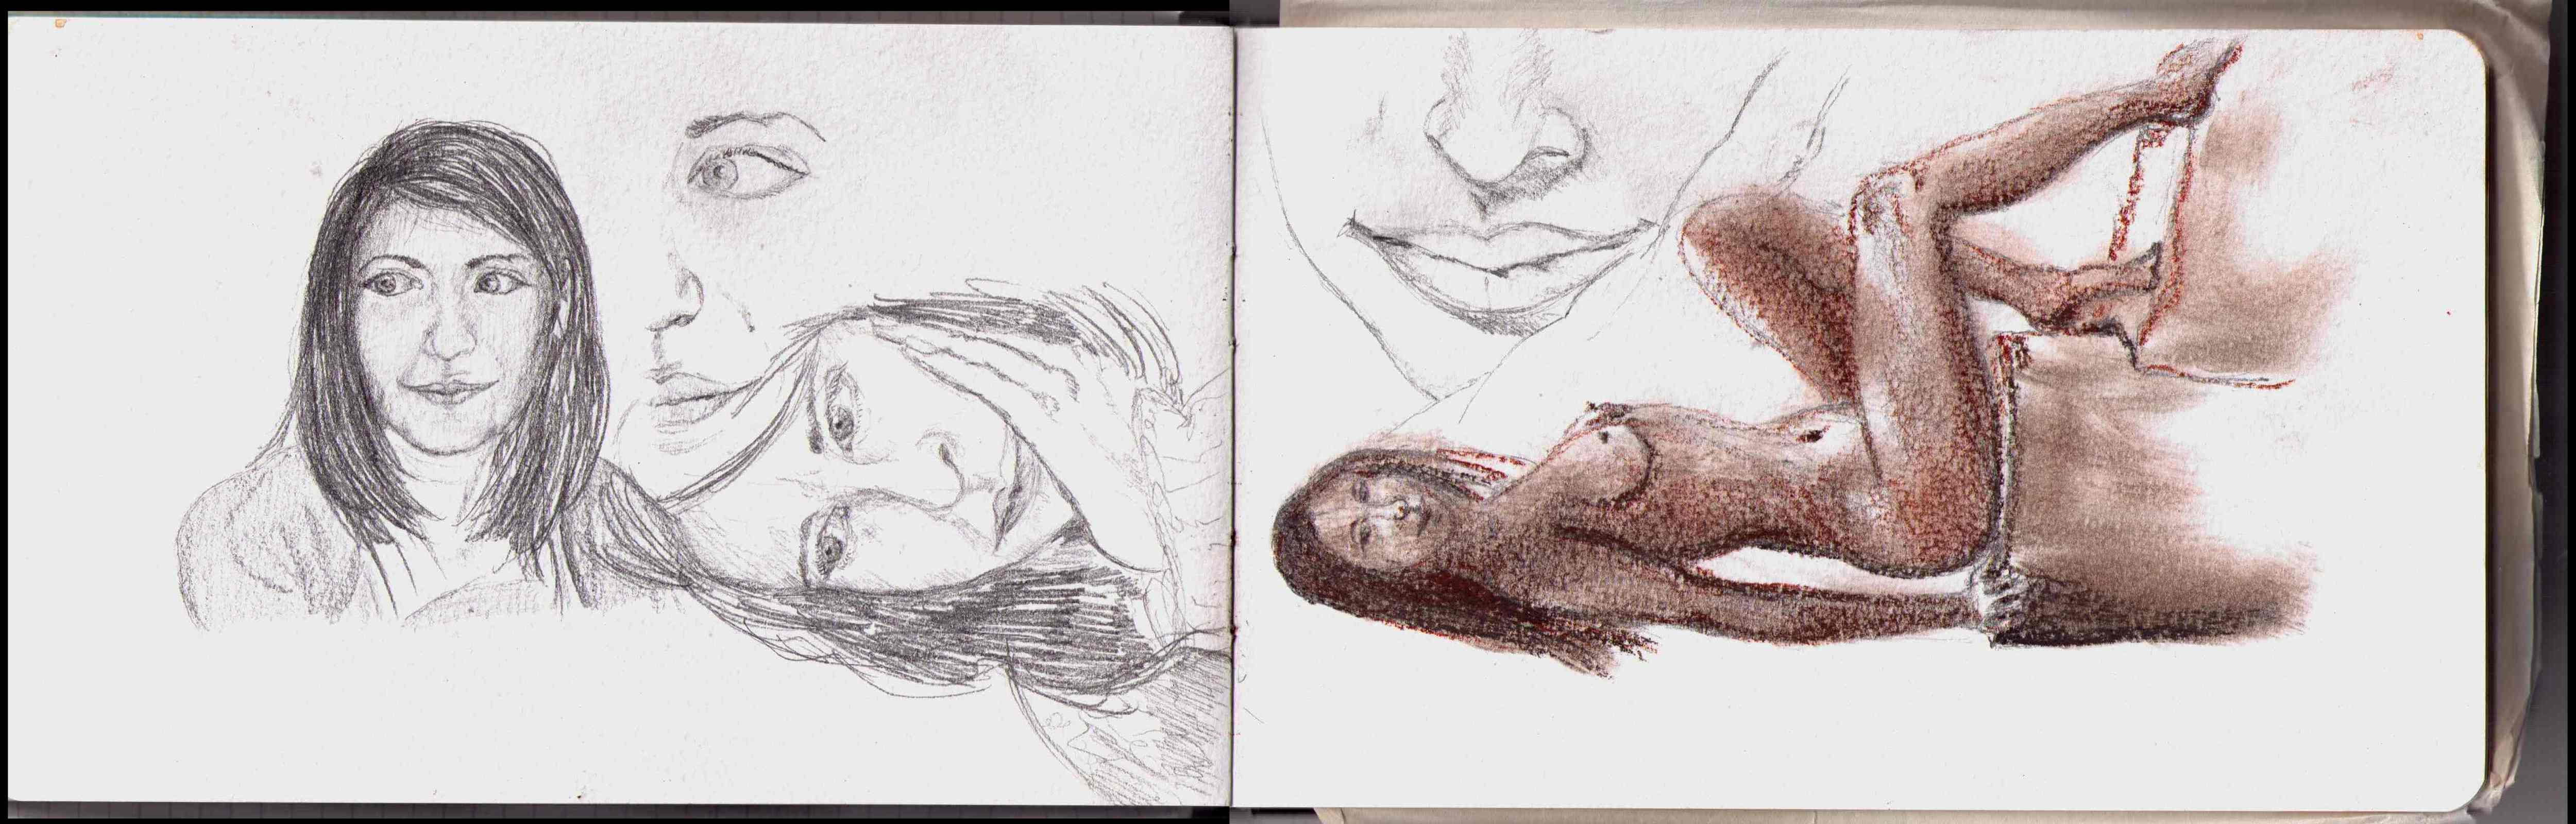 Studies for Florence Art Academy admission test